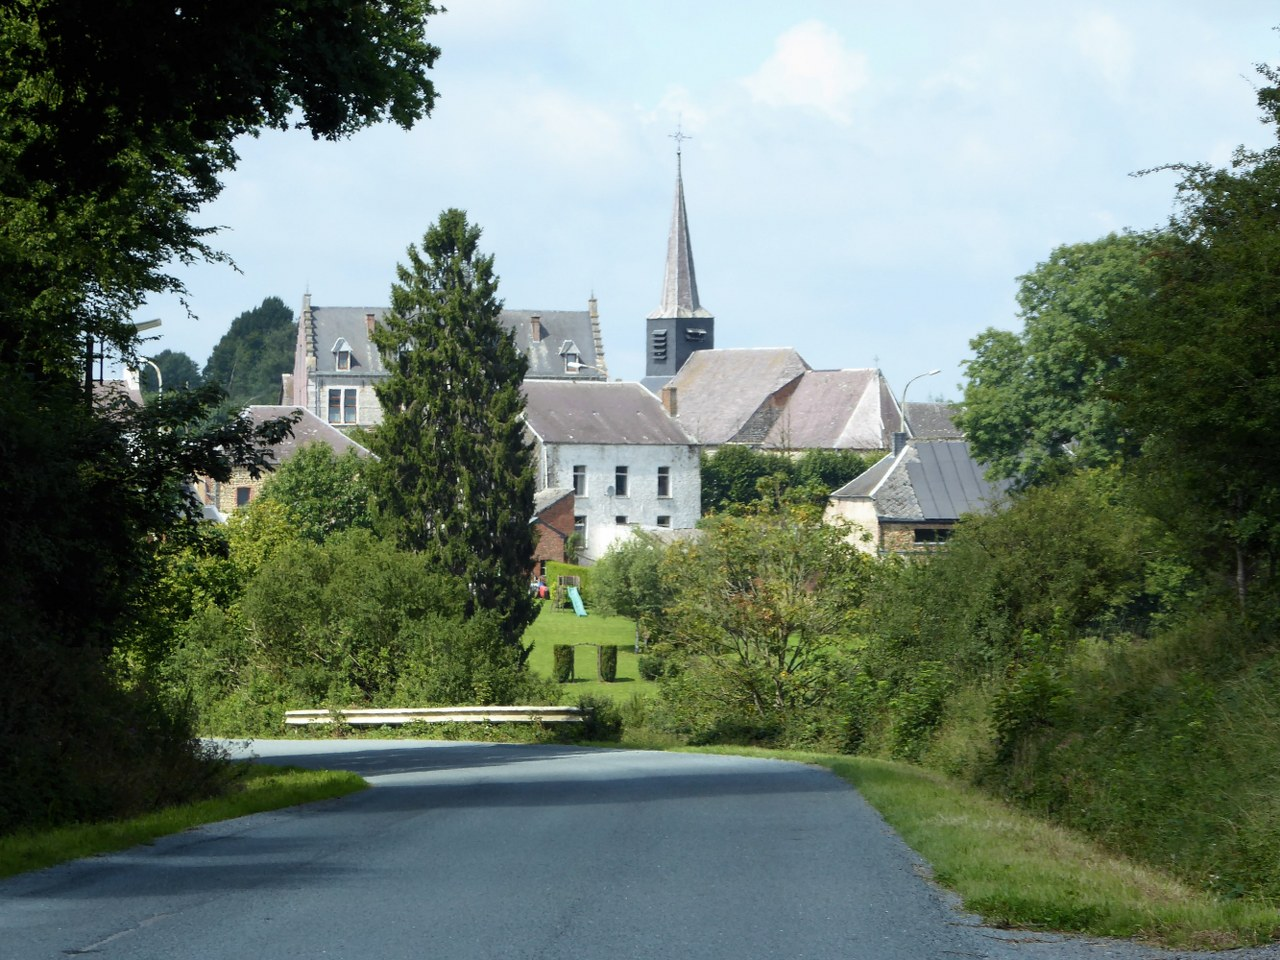 The village of Seloignes